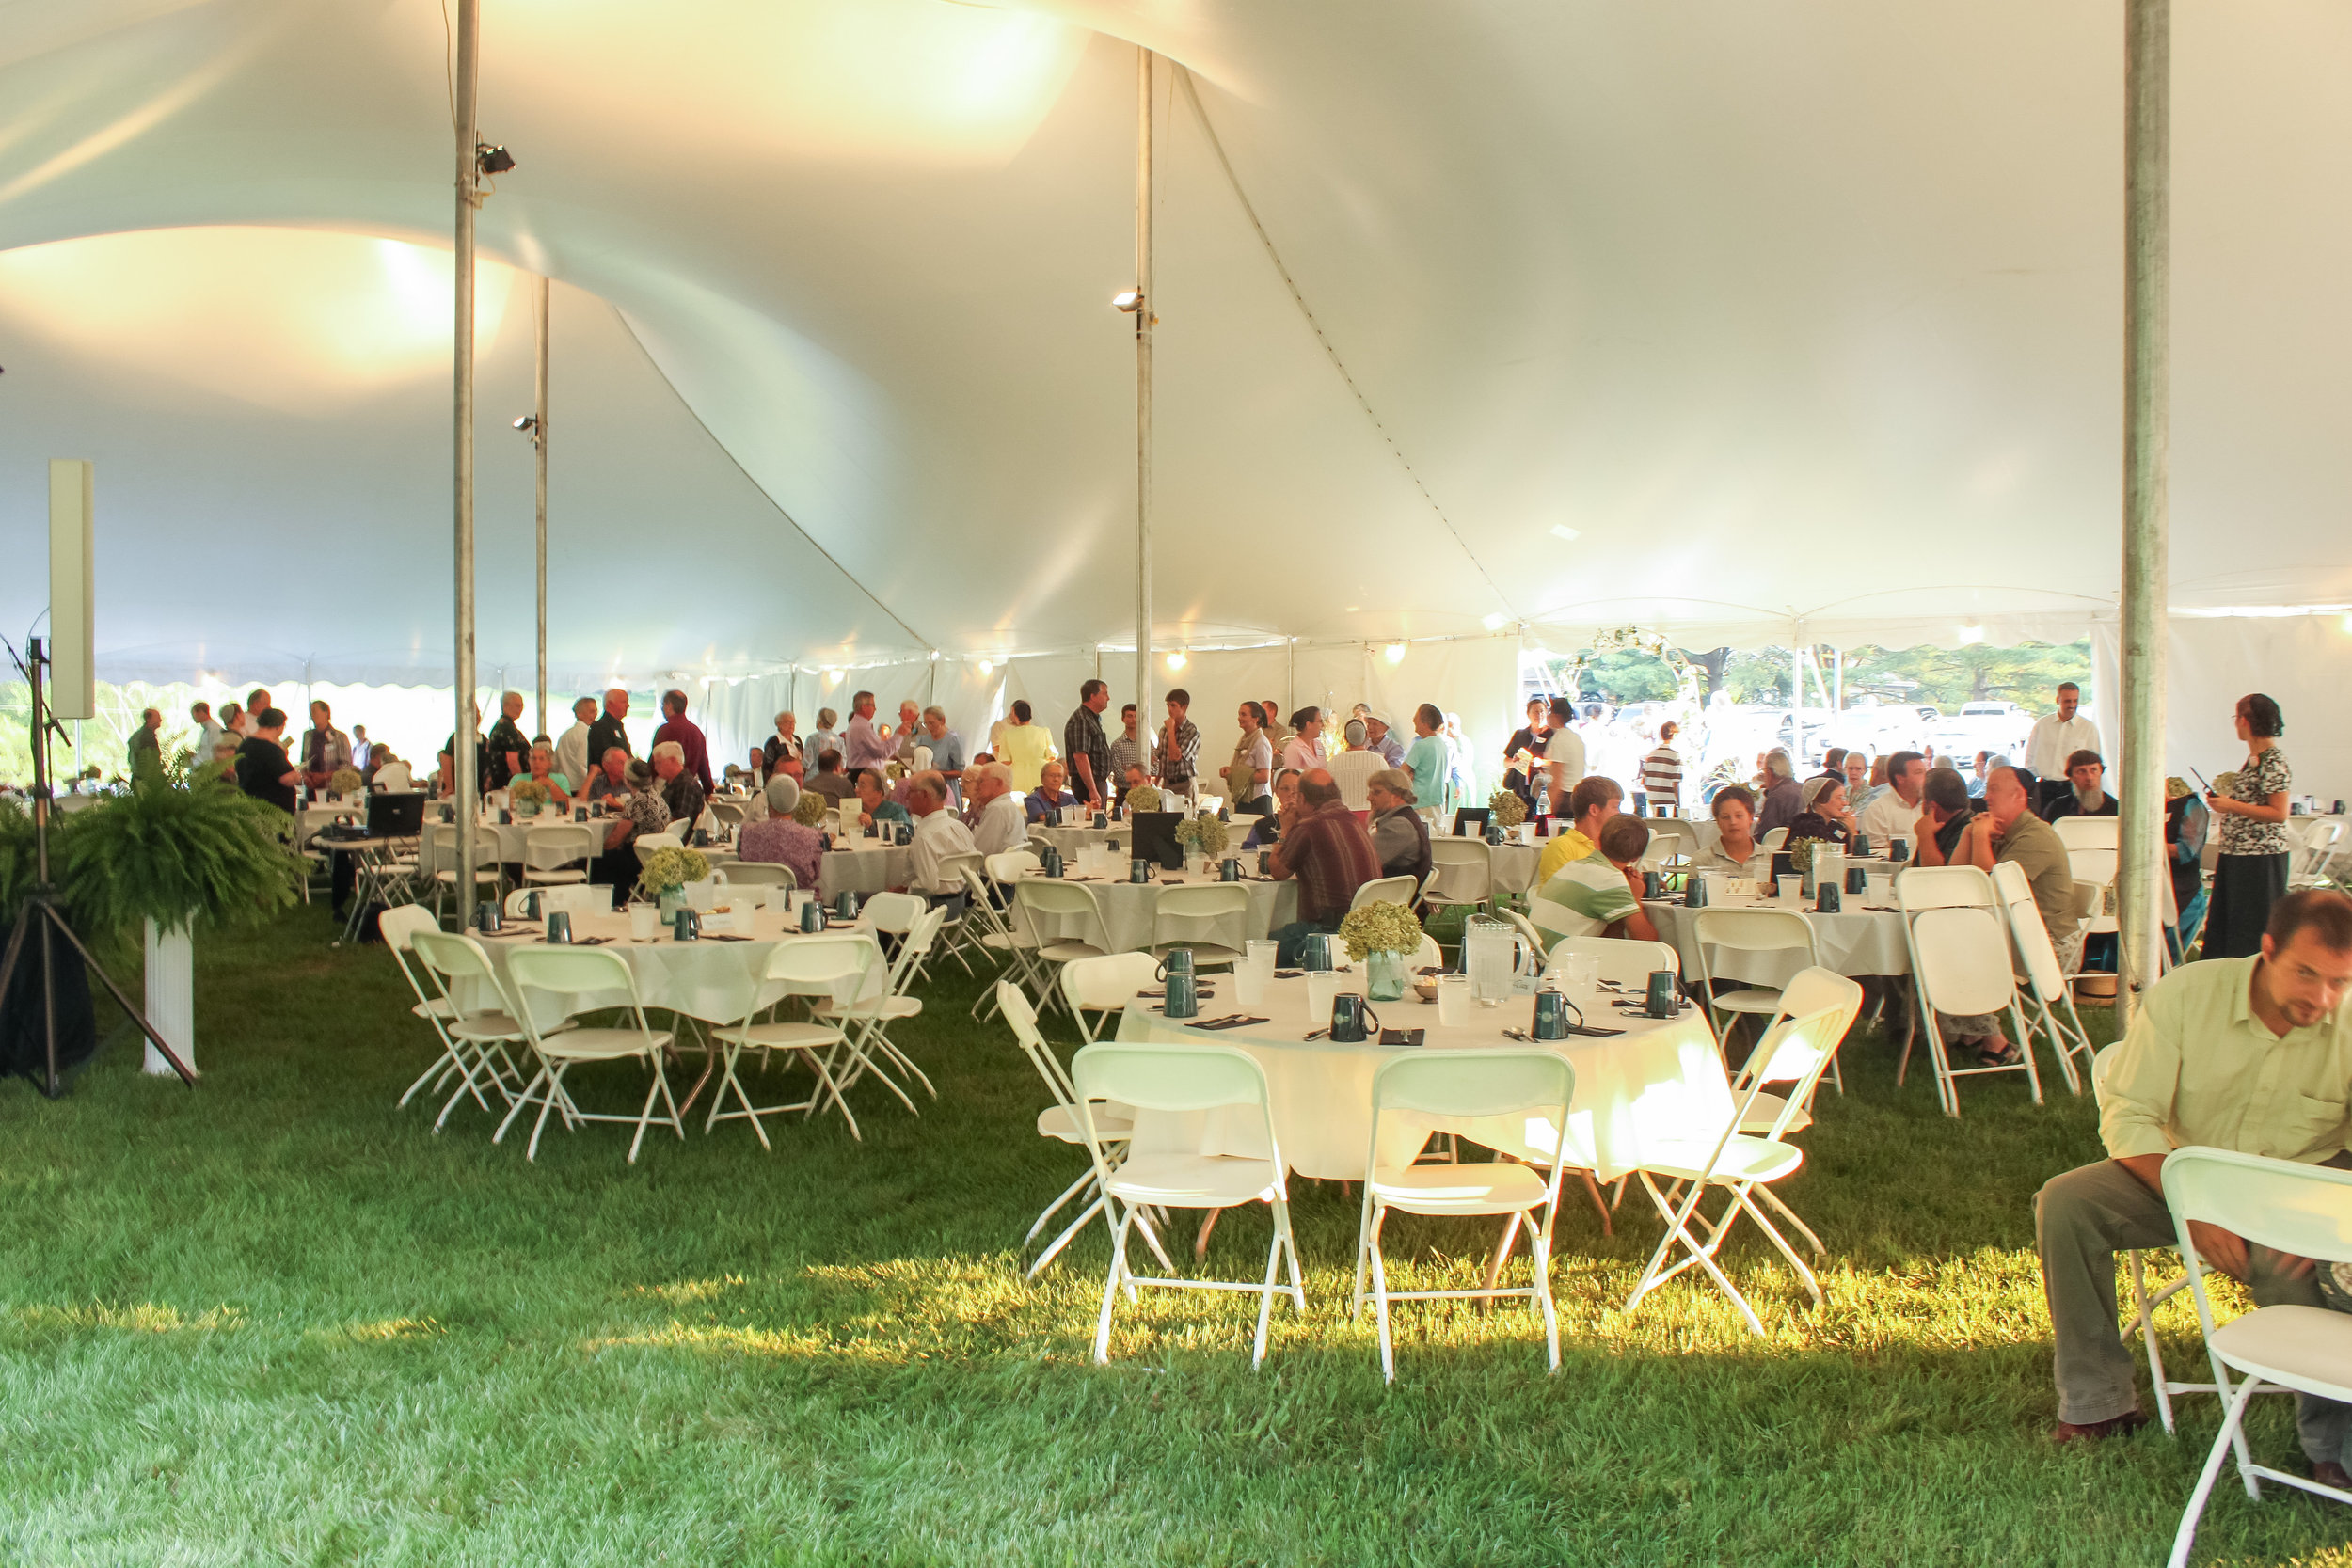 White folding chairs and round tables for your tent wedding reception